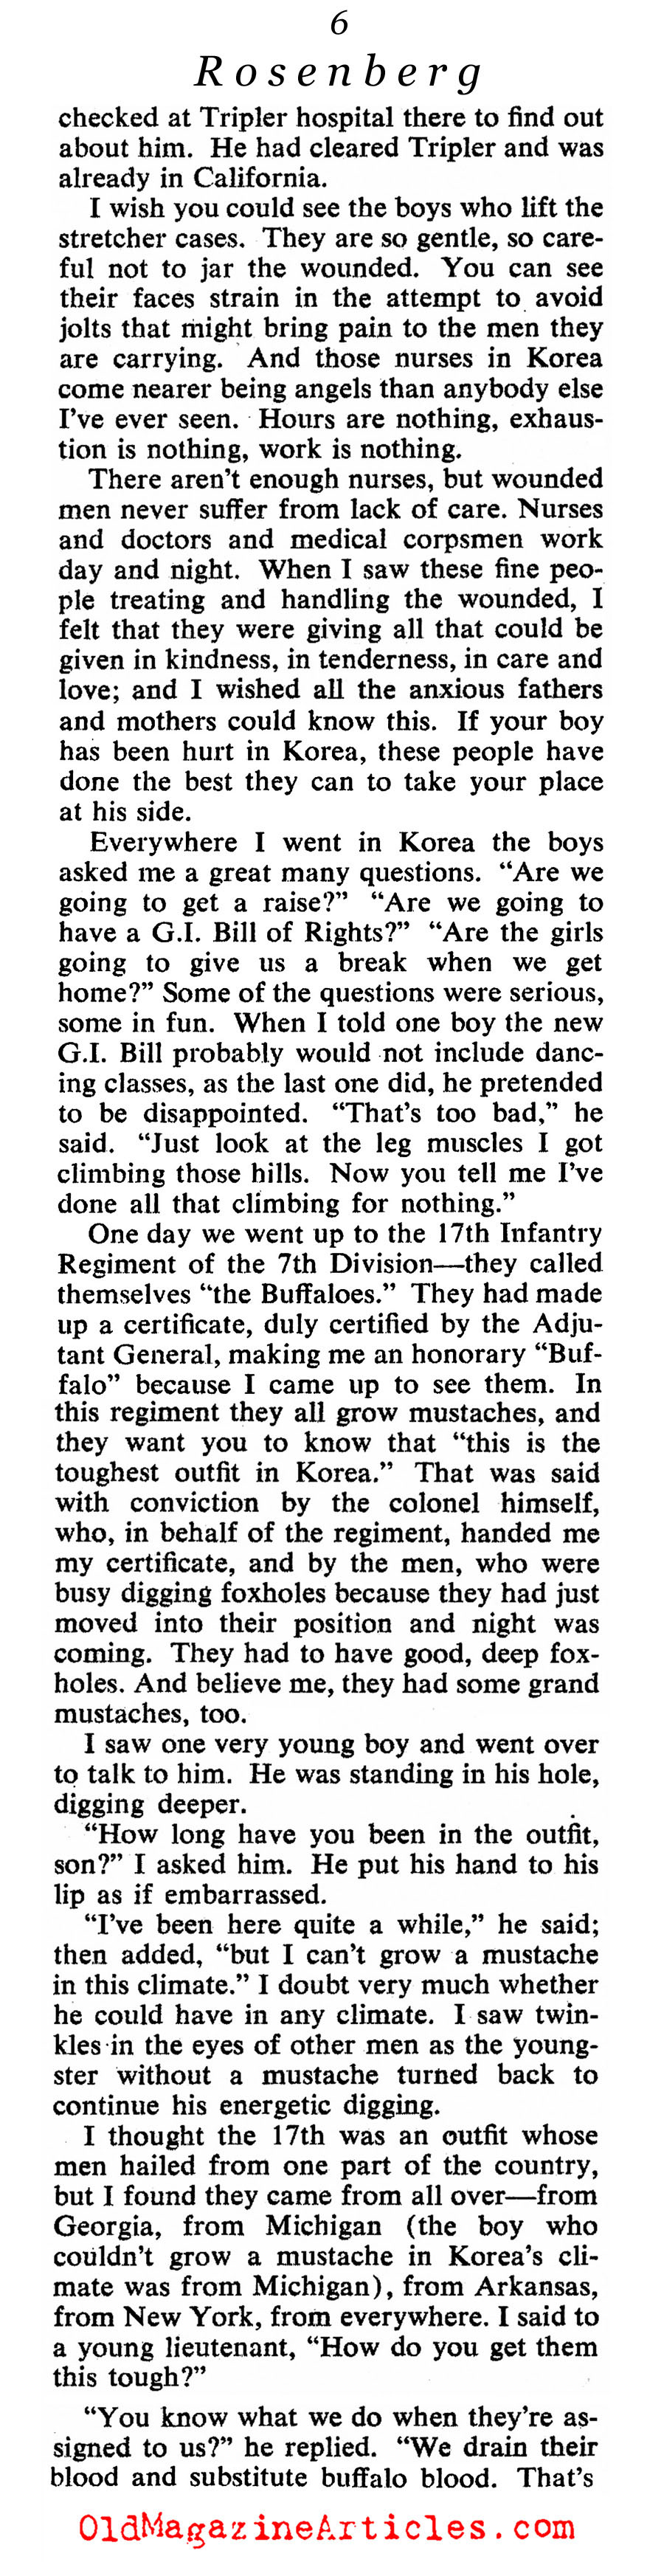 ''This I Saw In Korea'' (Collier's Magazine, 1952)